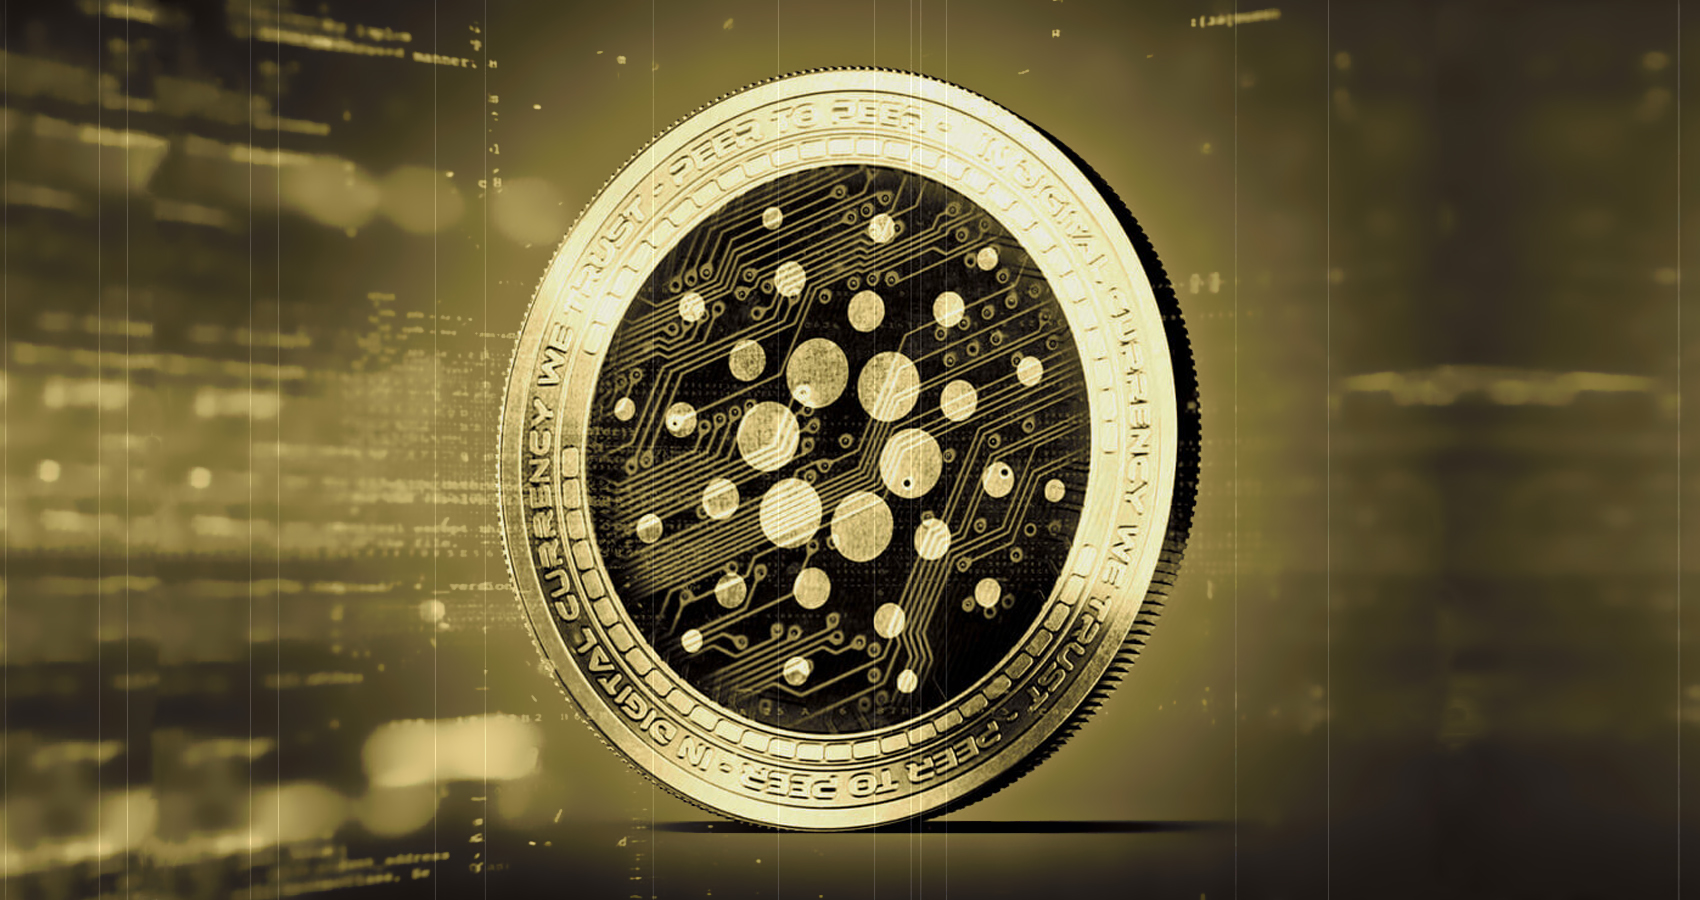 Cardano builds engines to trade cryptocurrencies